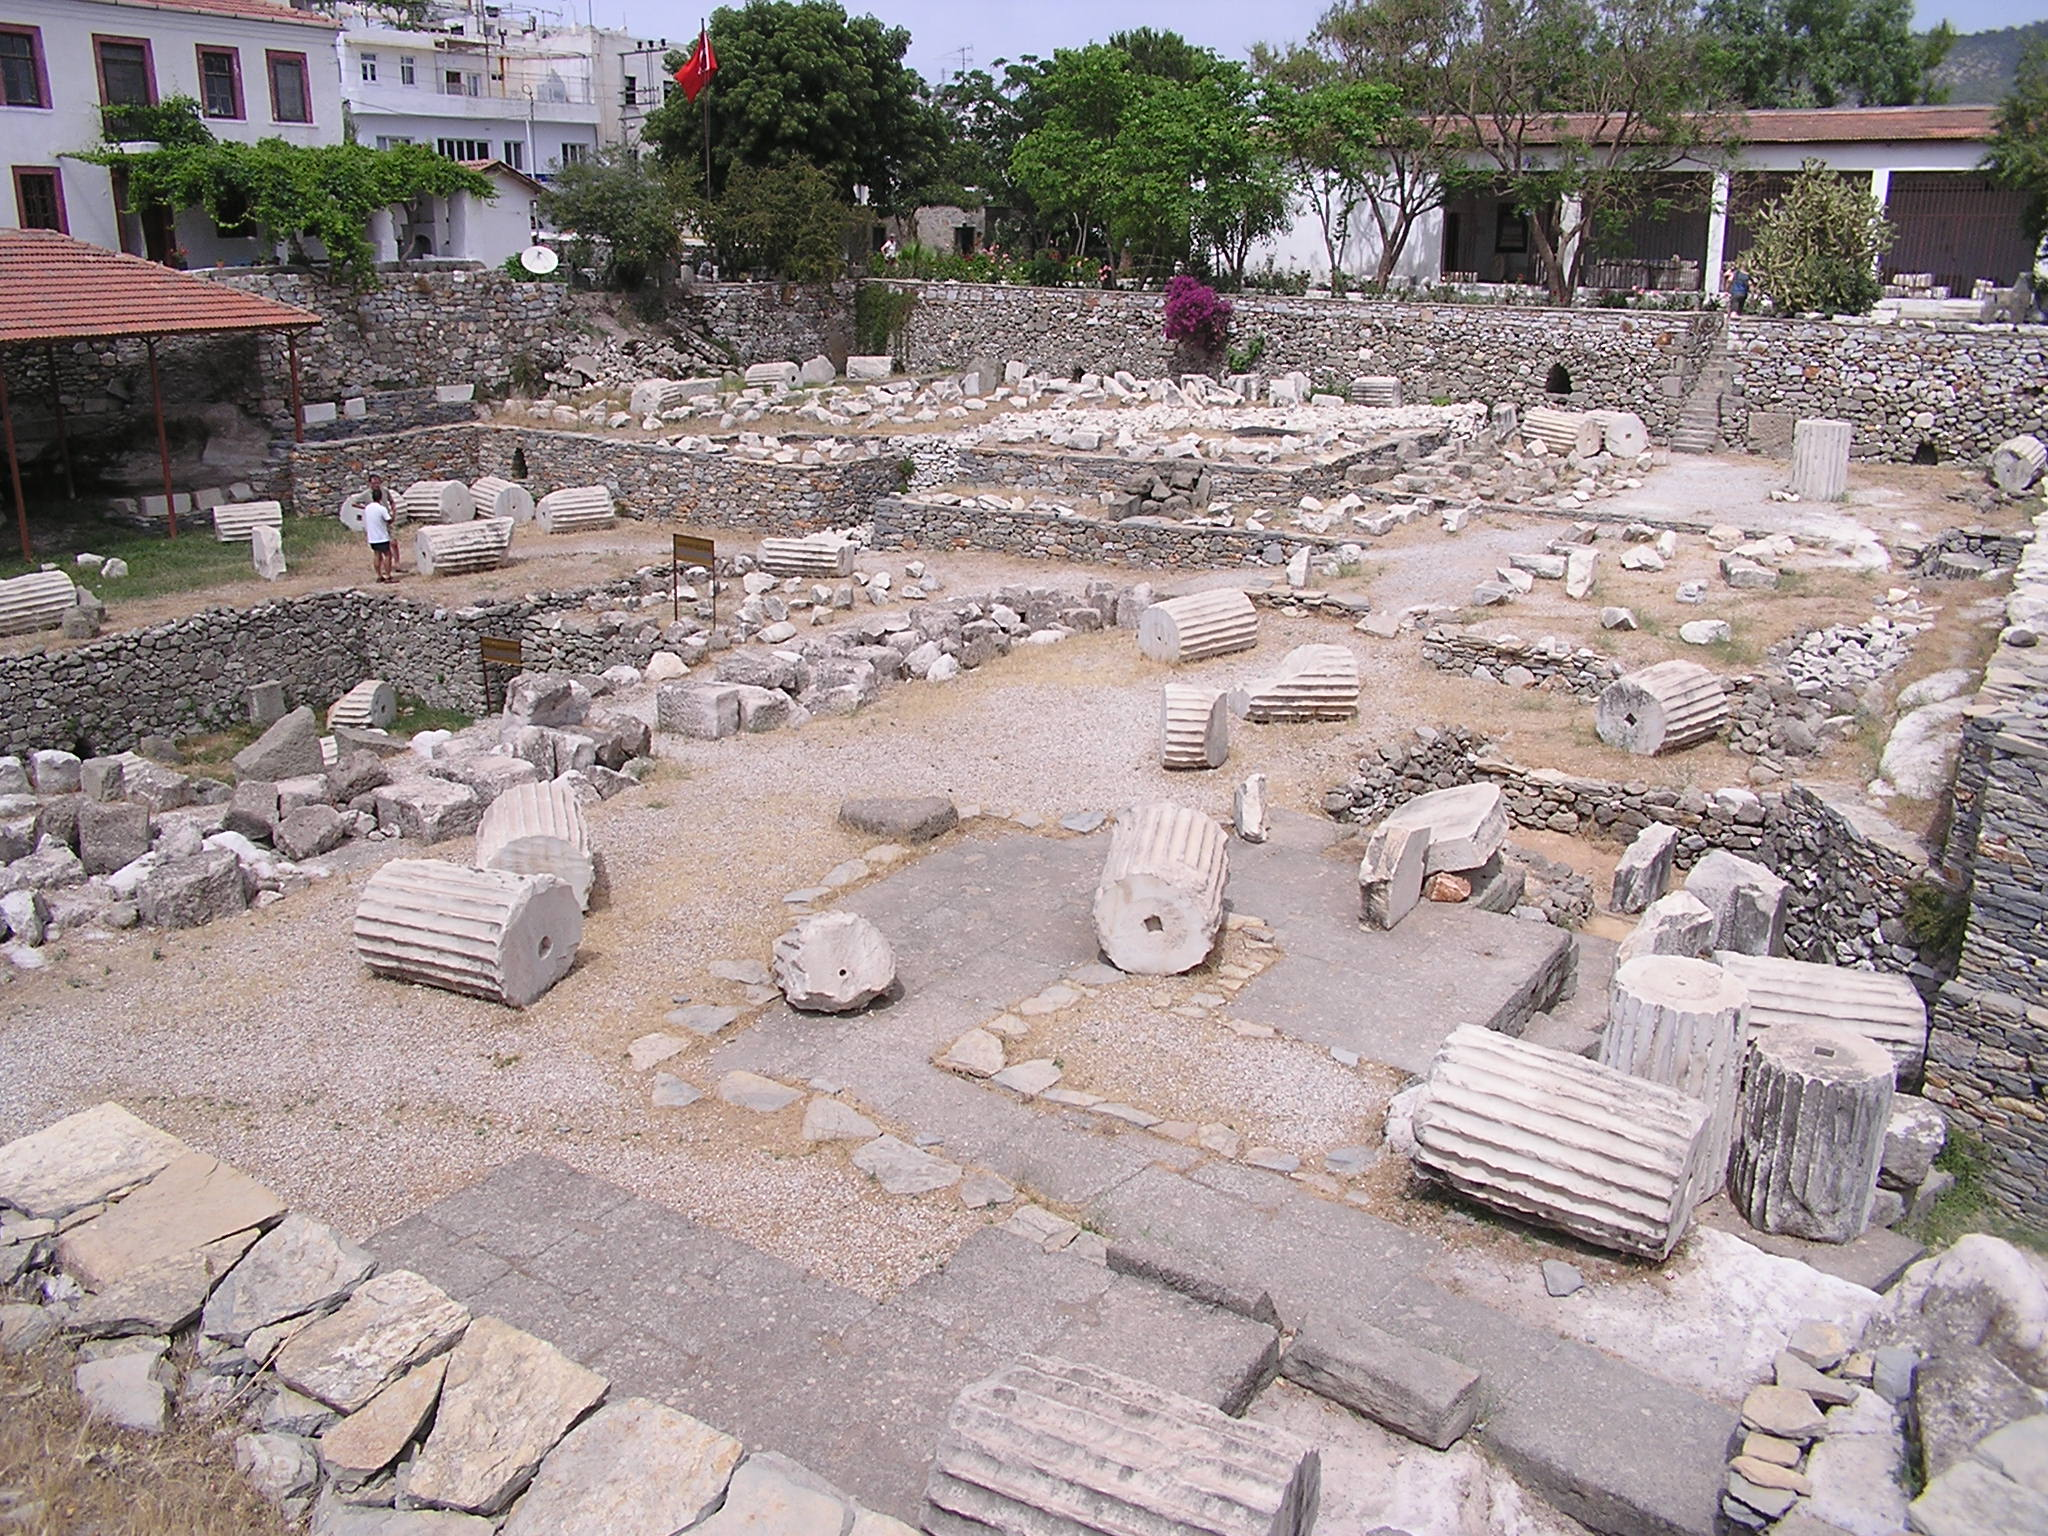 The Mausoleum at Halicarnassus ~ Holiday 4 U